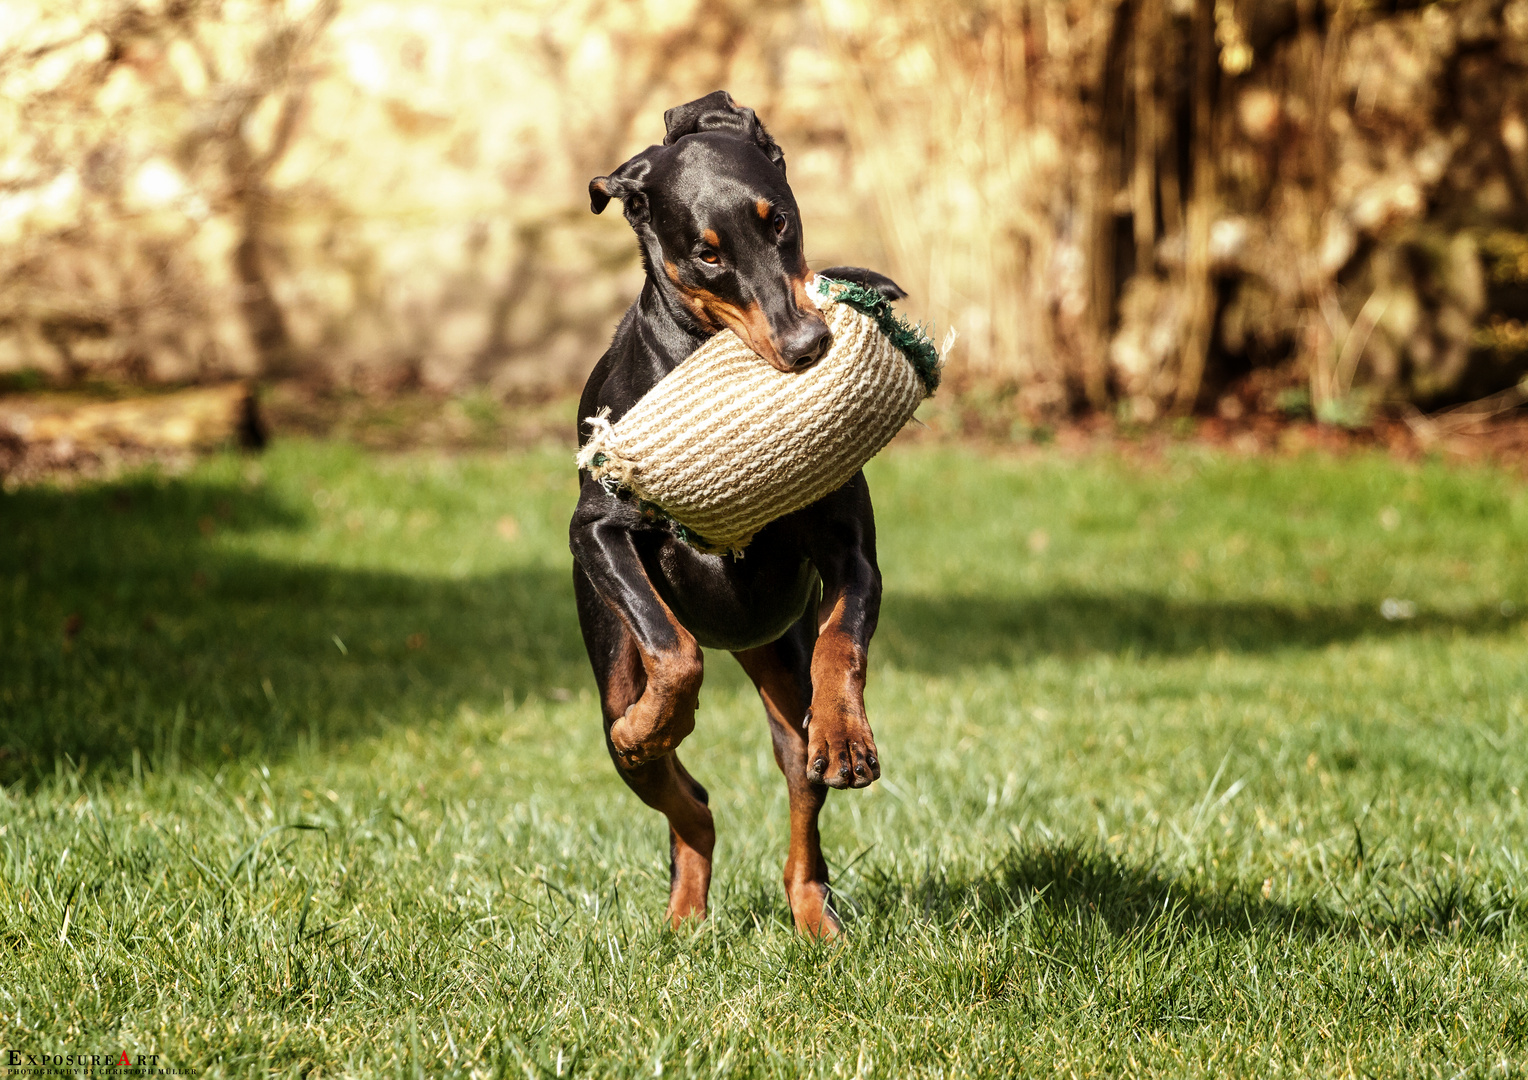 Doberman in Action